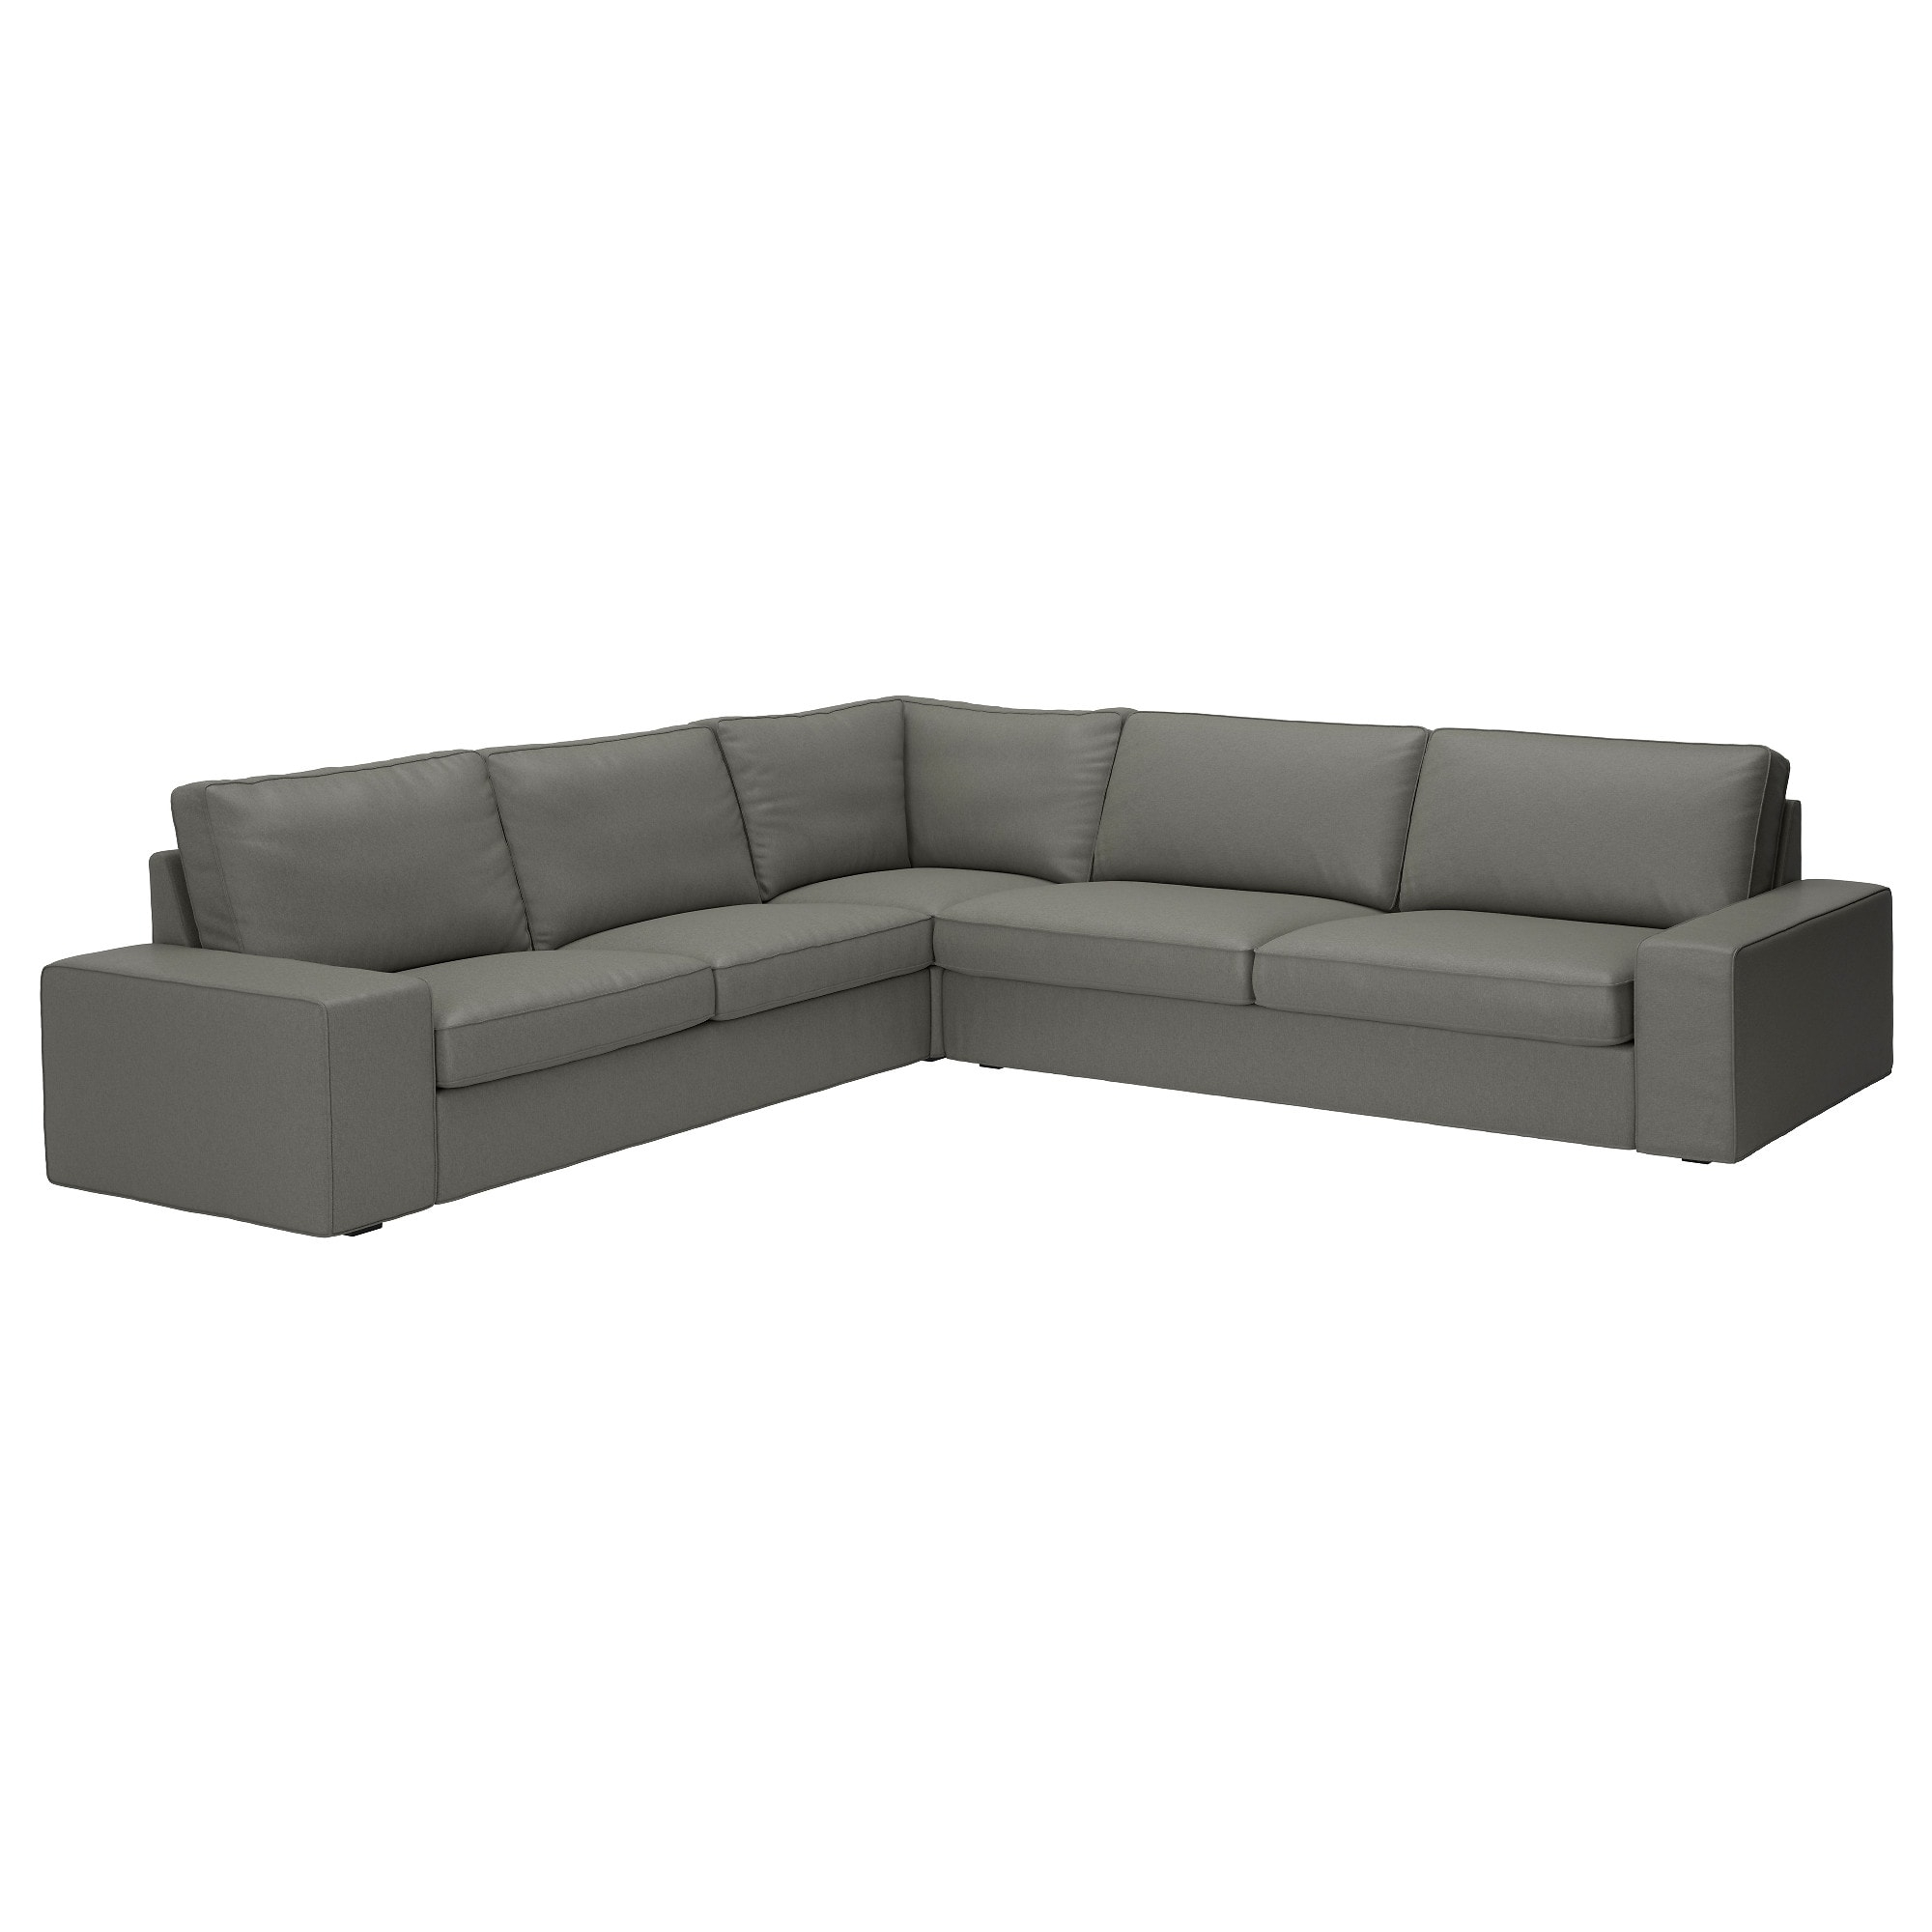 Kivik Sectional, 5 Seat Corner – Hillared Anthracite – Ikea In Mesa Foam 2 Piece Sectionals (View 12 of 25)